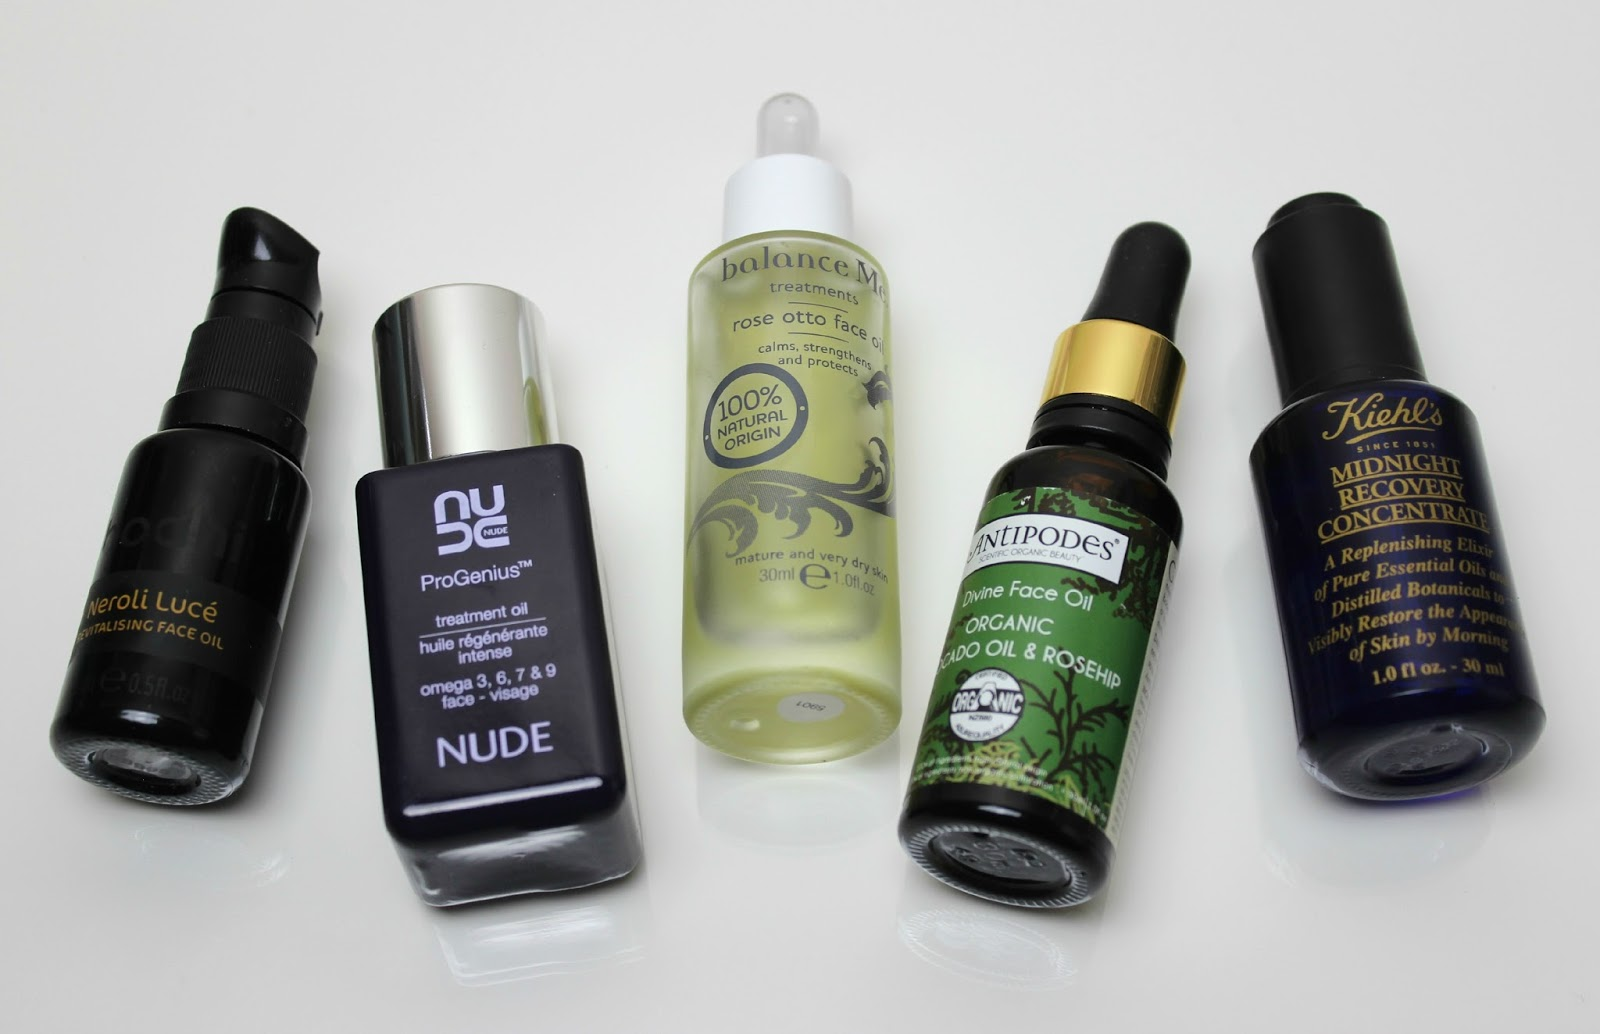 A picture of Bodhi & Birch Neroli Luce Revitalising Face Oil, Nude ProGenius Omega Treatment Oil, Balance Me Rose Otto Face Oil, Antipodes Divine Face Oil and Kiehl's Midnight Recovery Concentrate